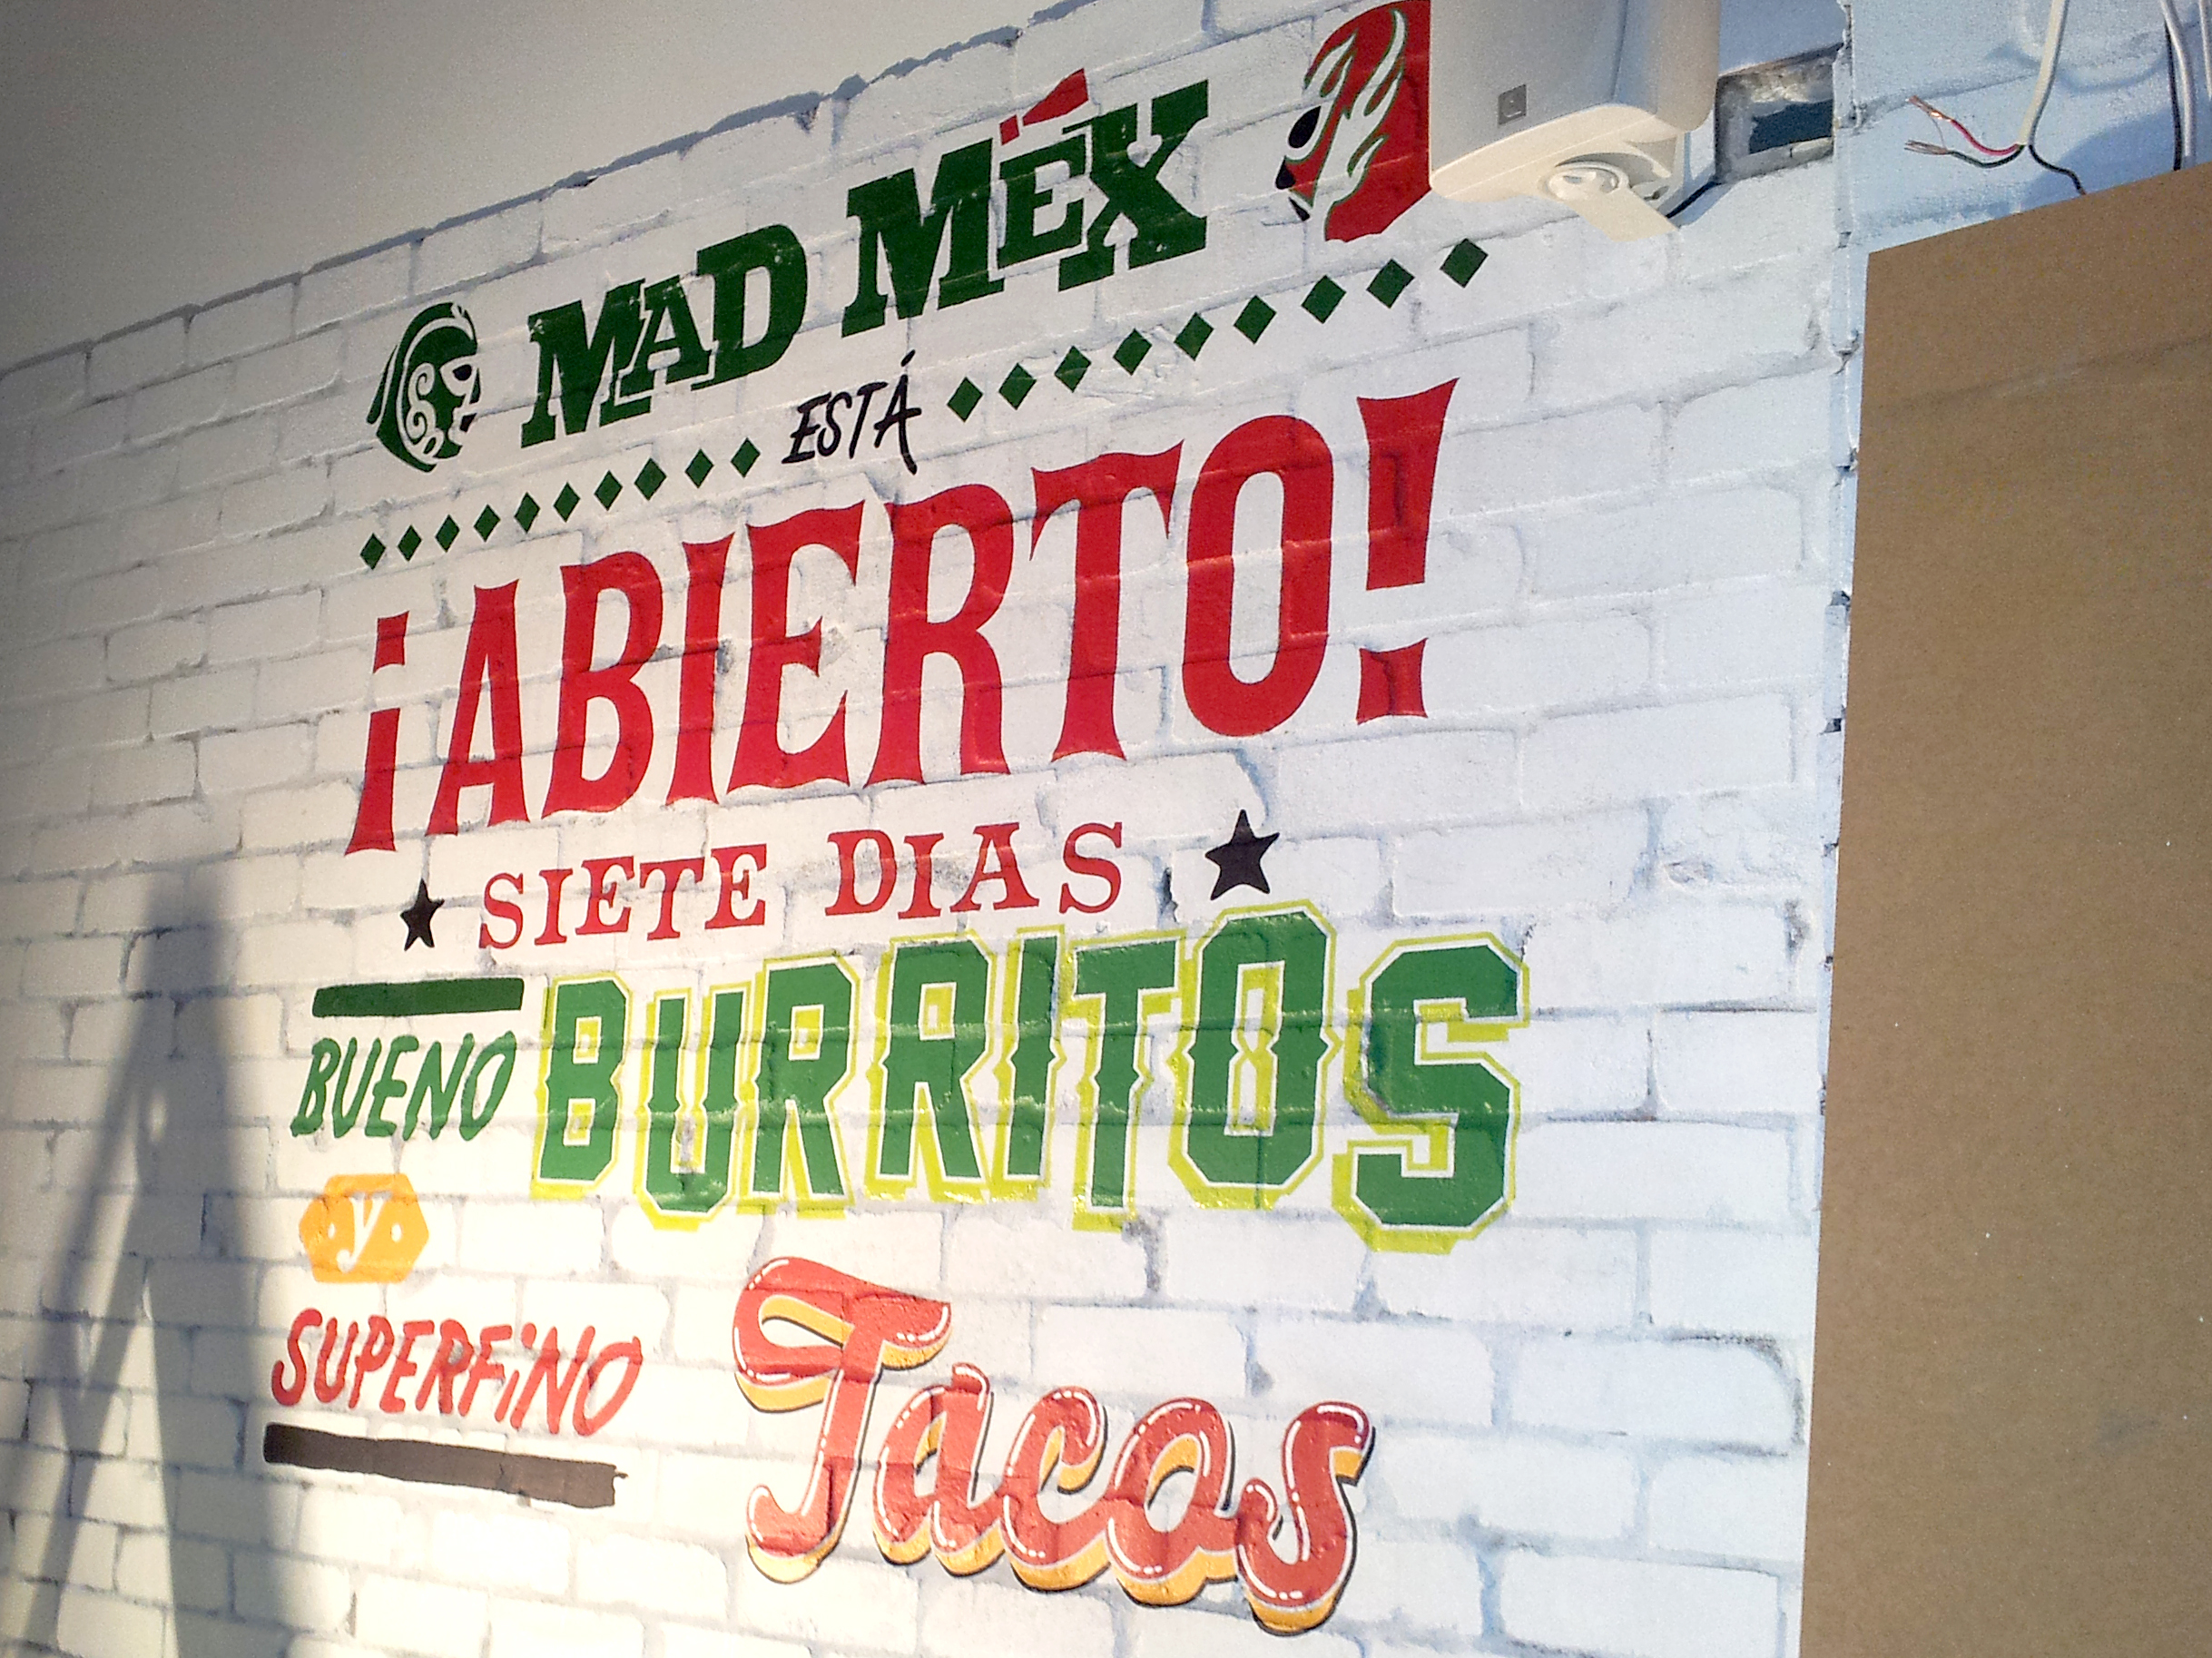 Hand Painted Signs - Let's face it, nothing compares to the artistic flair of traditional hand painted signage. It gives your brand or next project the creativity and personality your business needs.